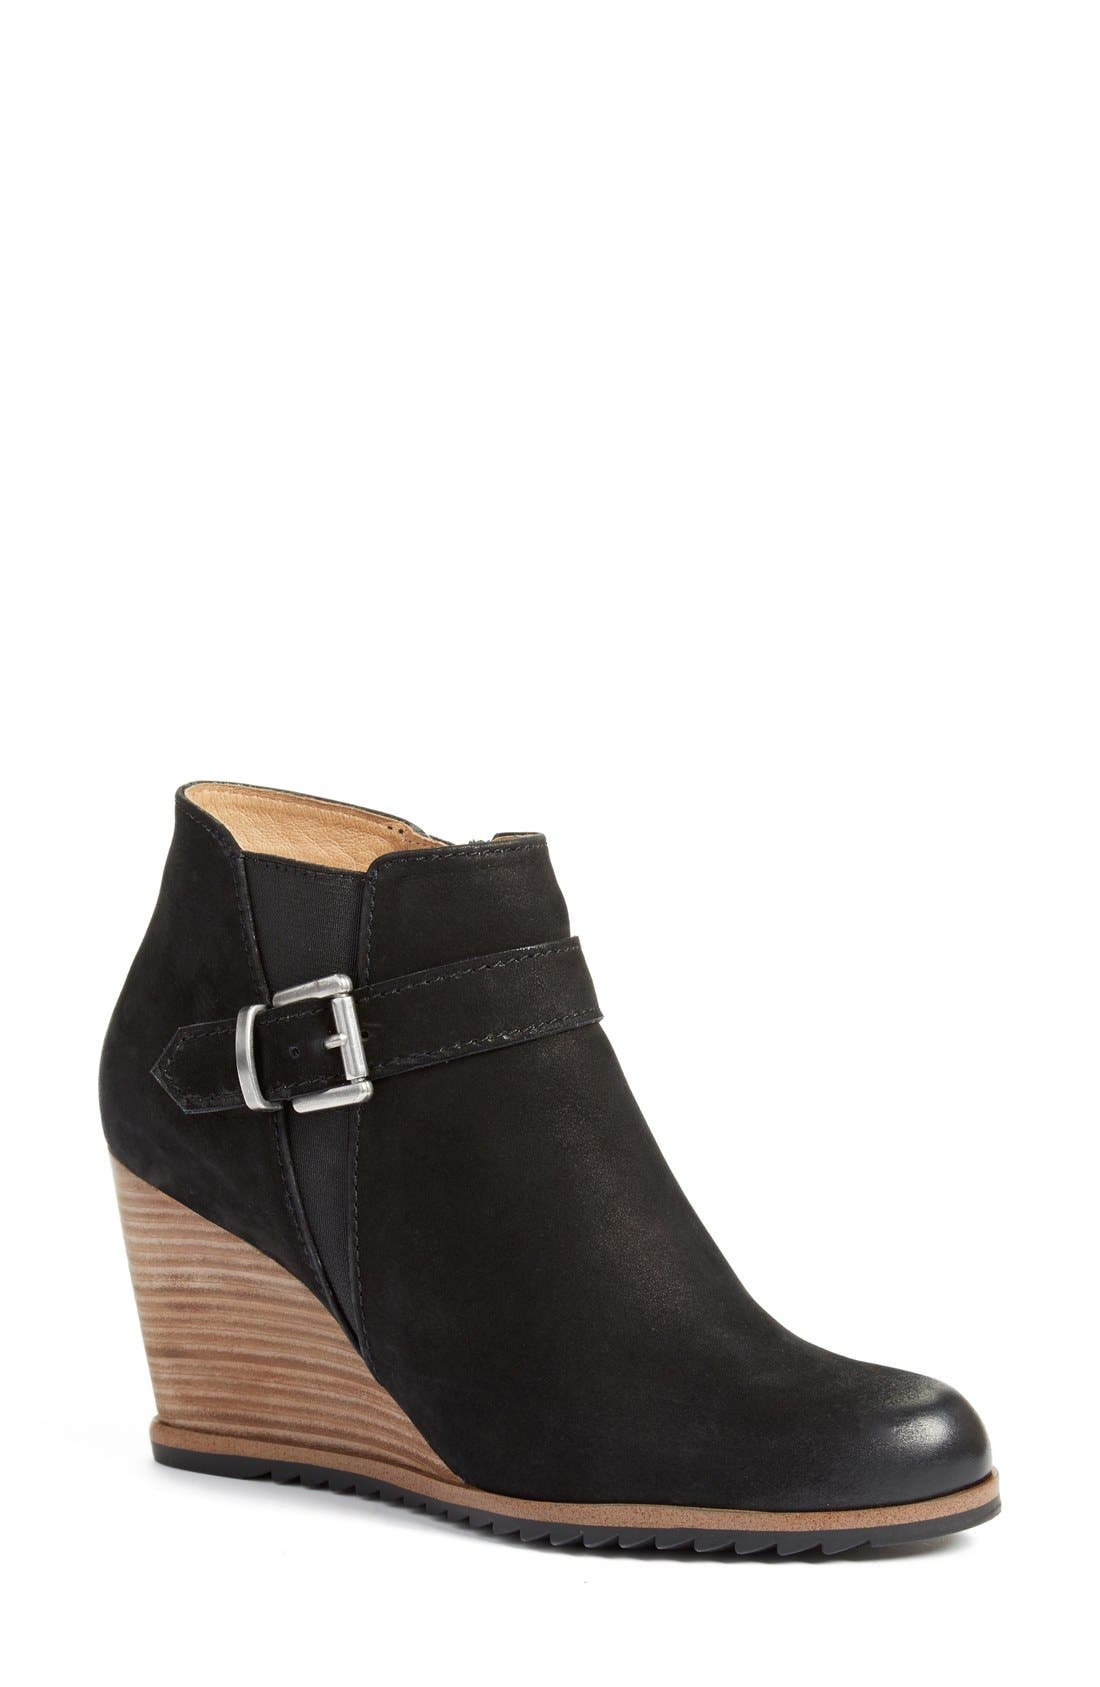 Alternate Image 1 Selected - Caslon® 'Addison' Wedge Bootie (Women)